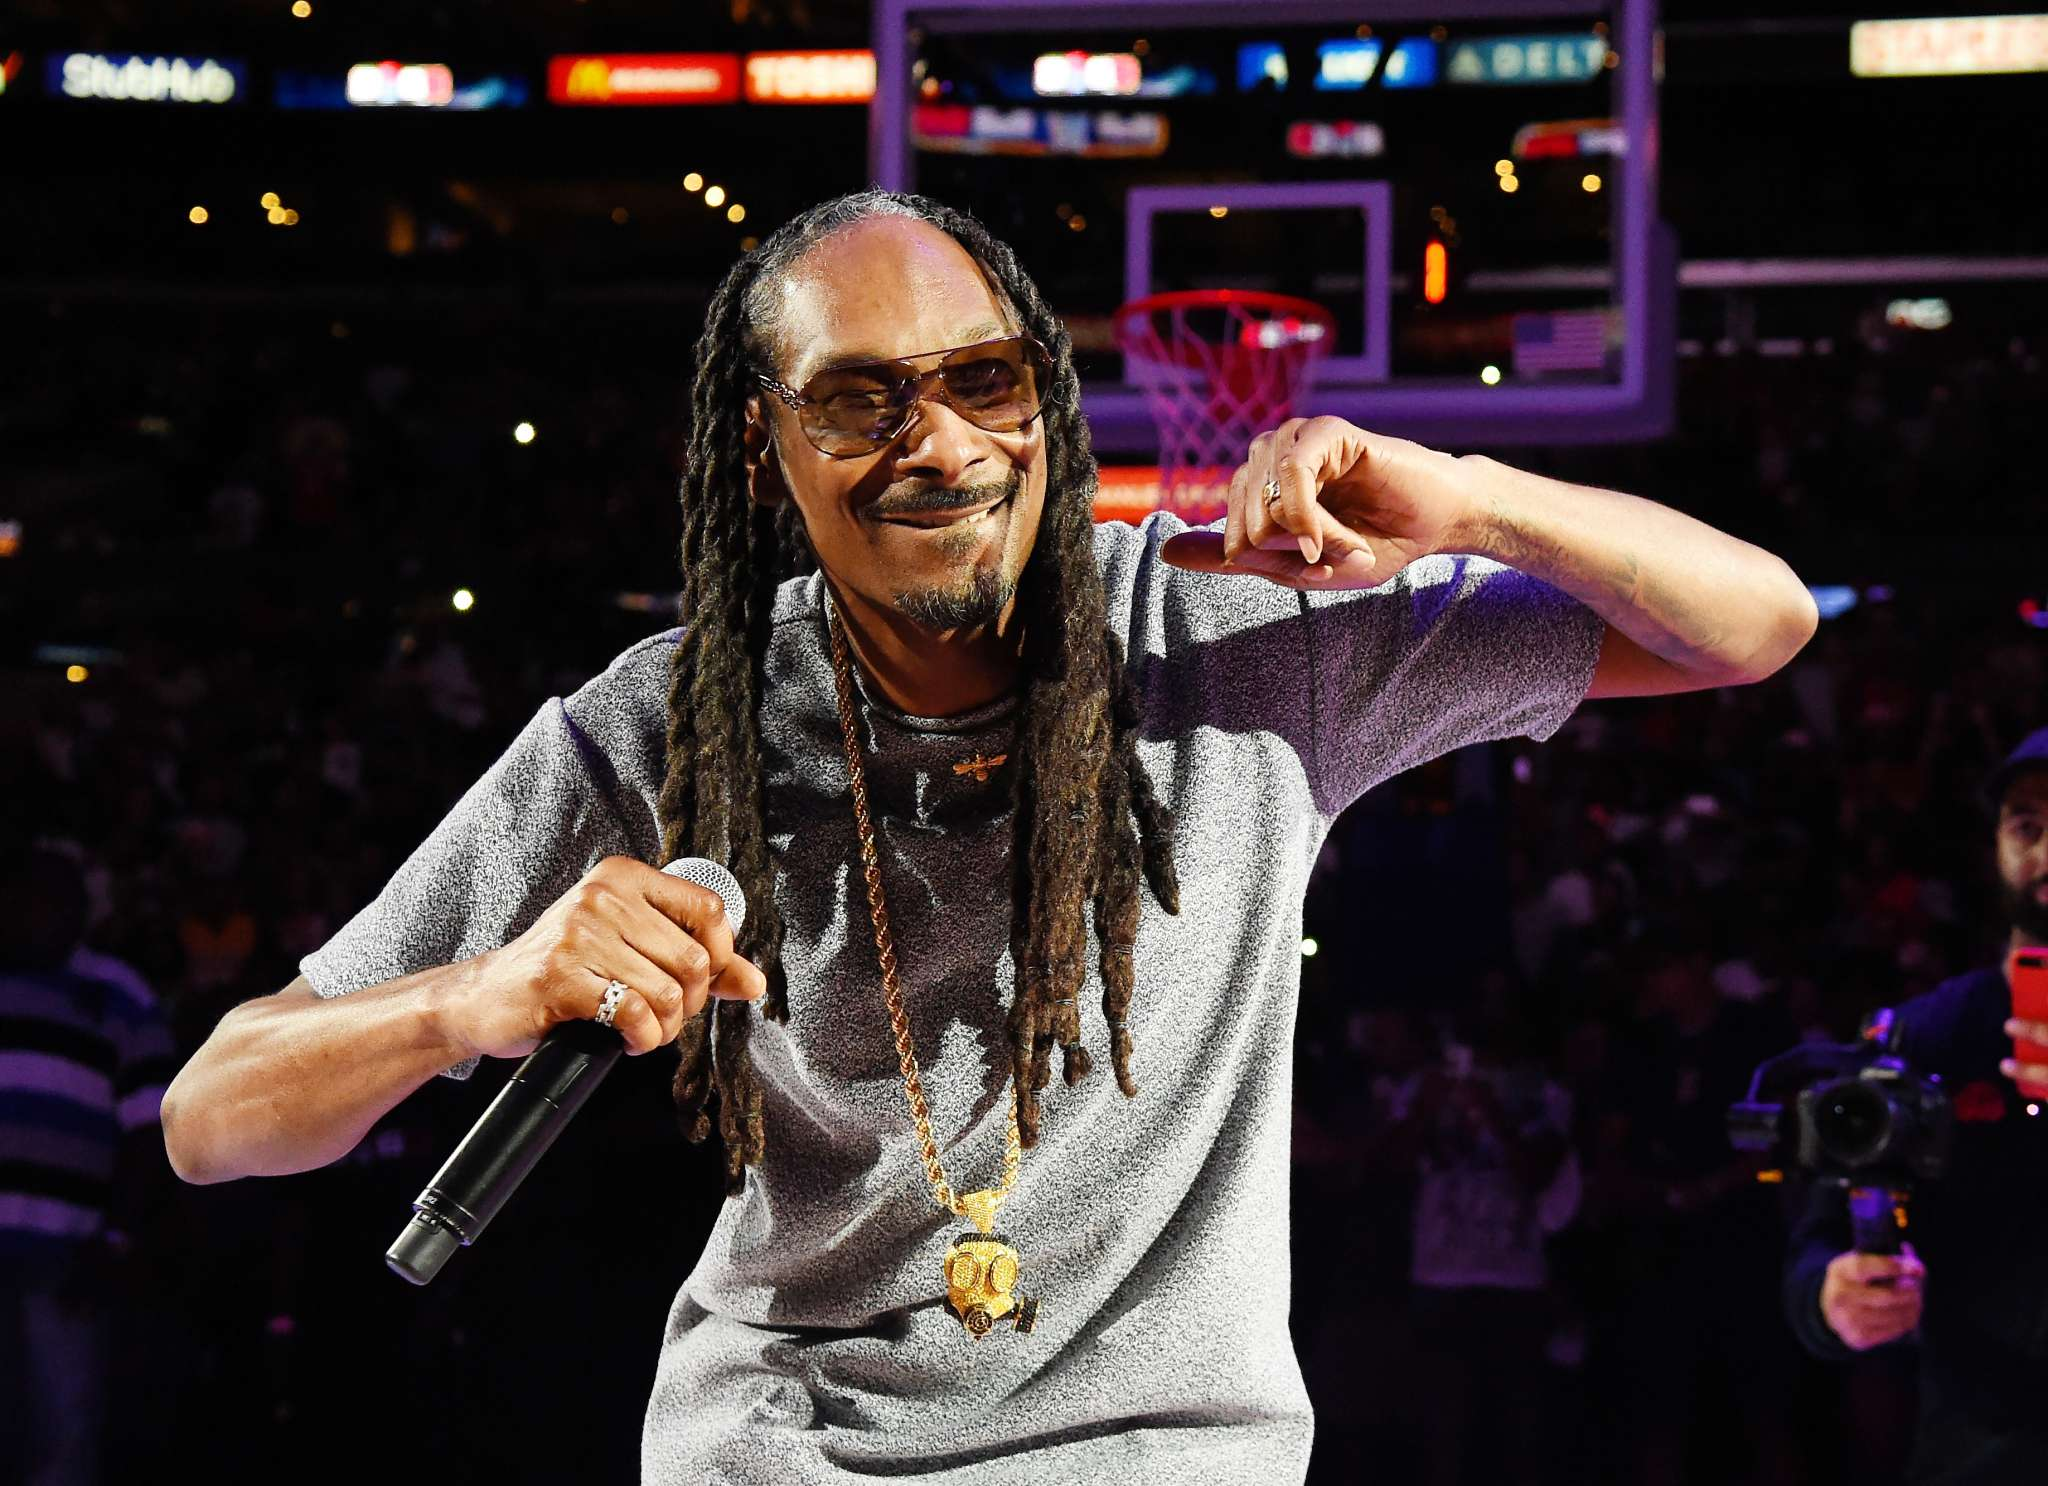 """snoop-dogg-has-a-problem-that-rapper-t-i-could-fix-according-to-fans-check-out-whats-this-all-about"""